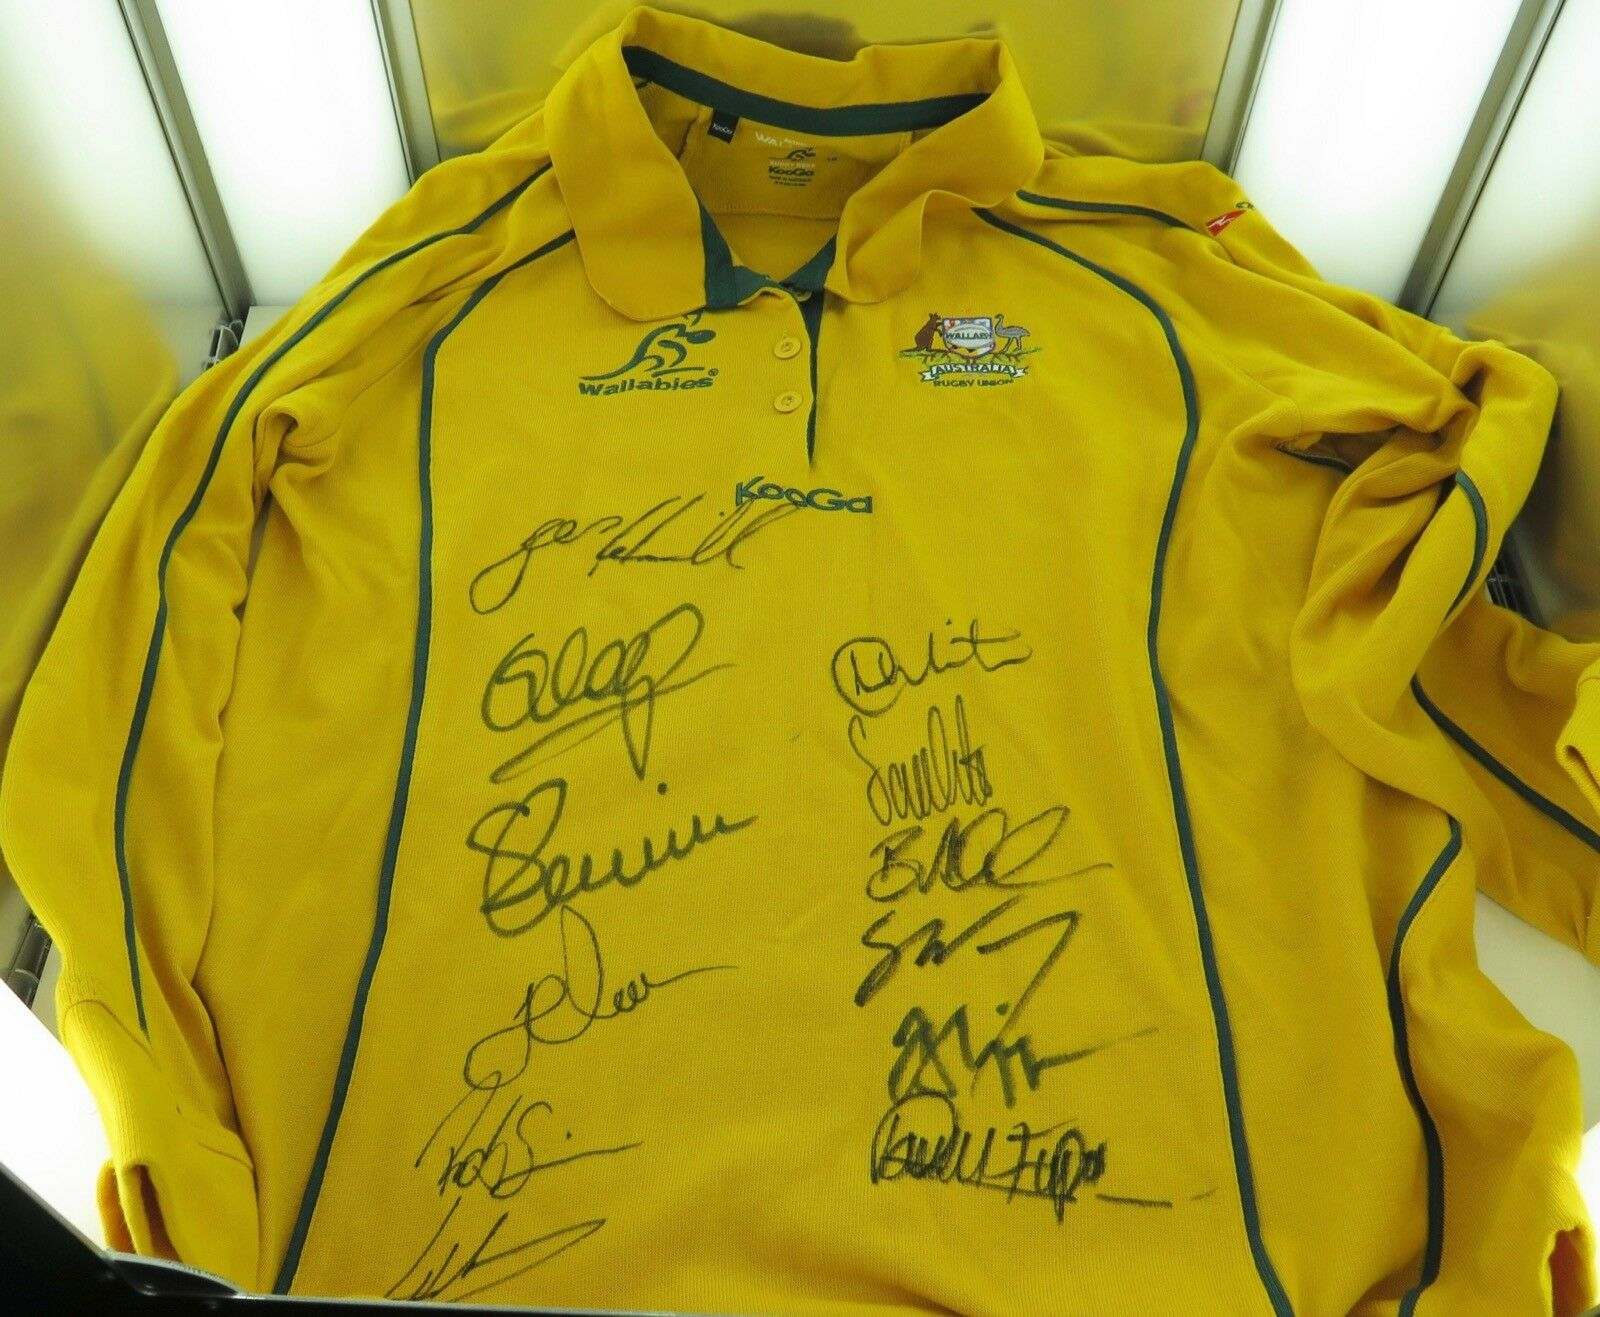 .RUGBY UNION. WALLABIES SIGNED OFFICIAL KooGa SUPPORTERS SHIRT. 12 SIGNATURES.